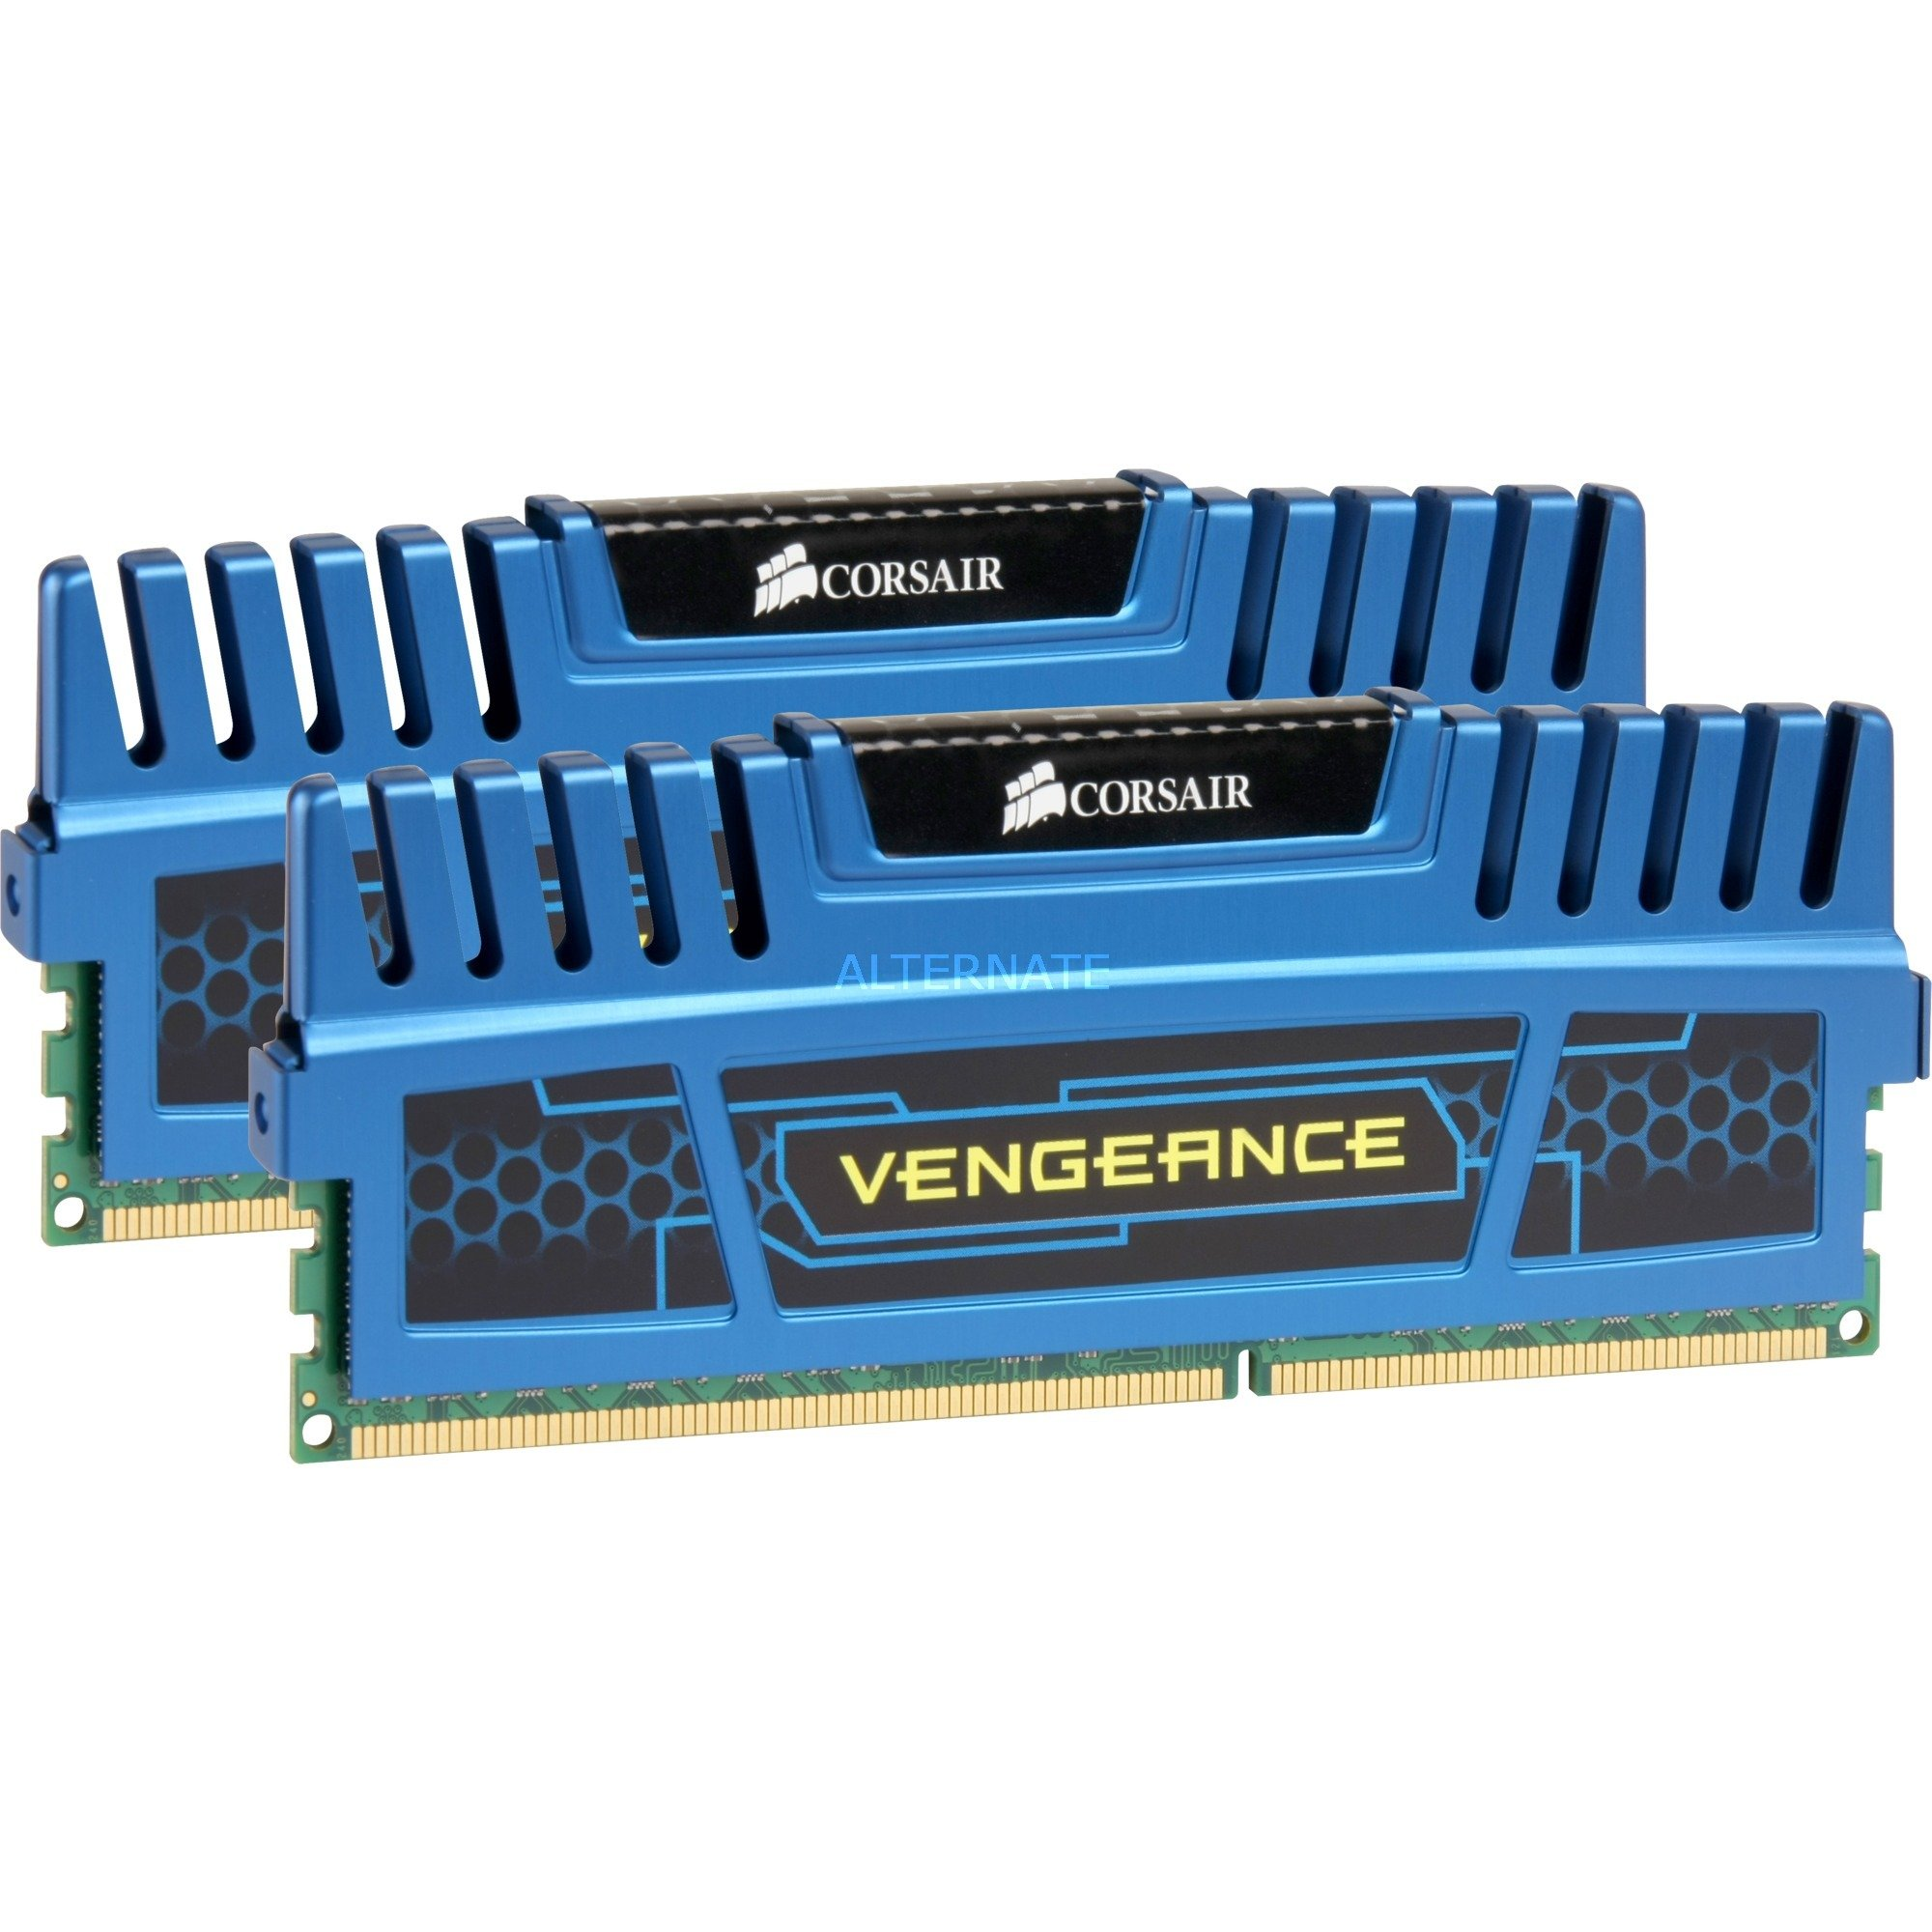 Vengeance Low Profile Series 16 Go (2x 8 Go) DDR3 1600 MHz CL10 Bleu, Mémoire